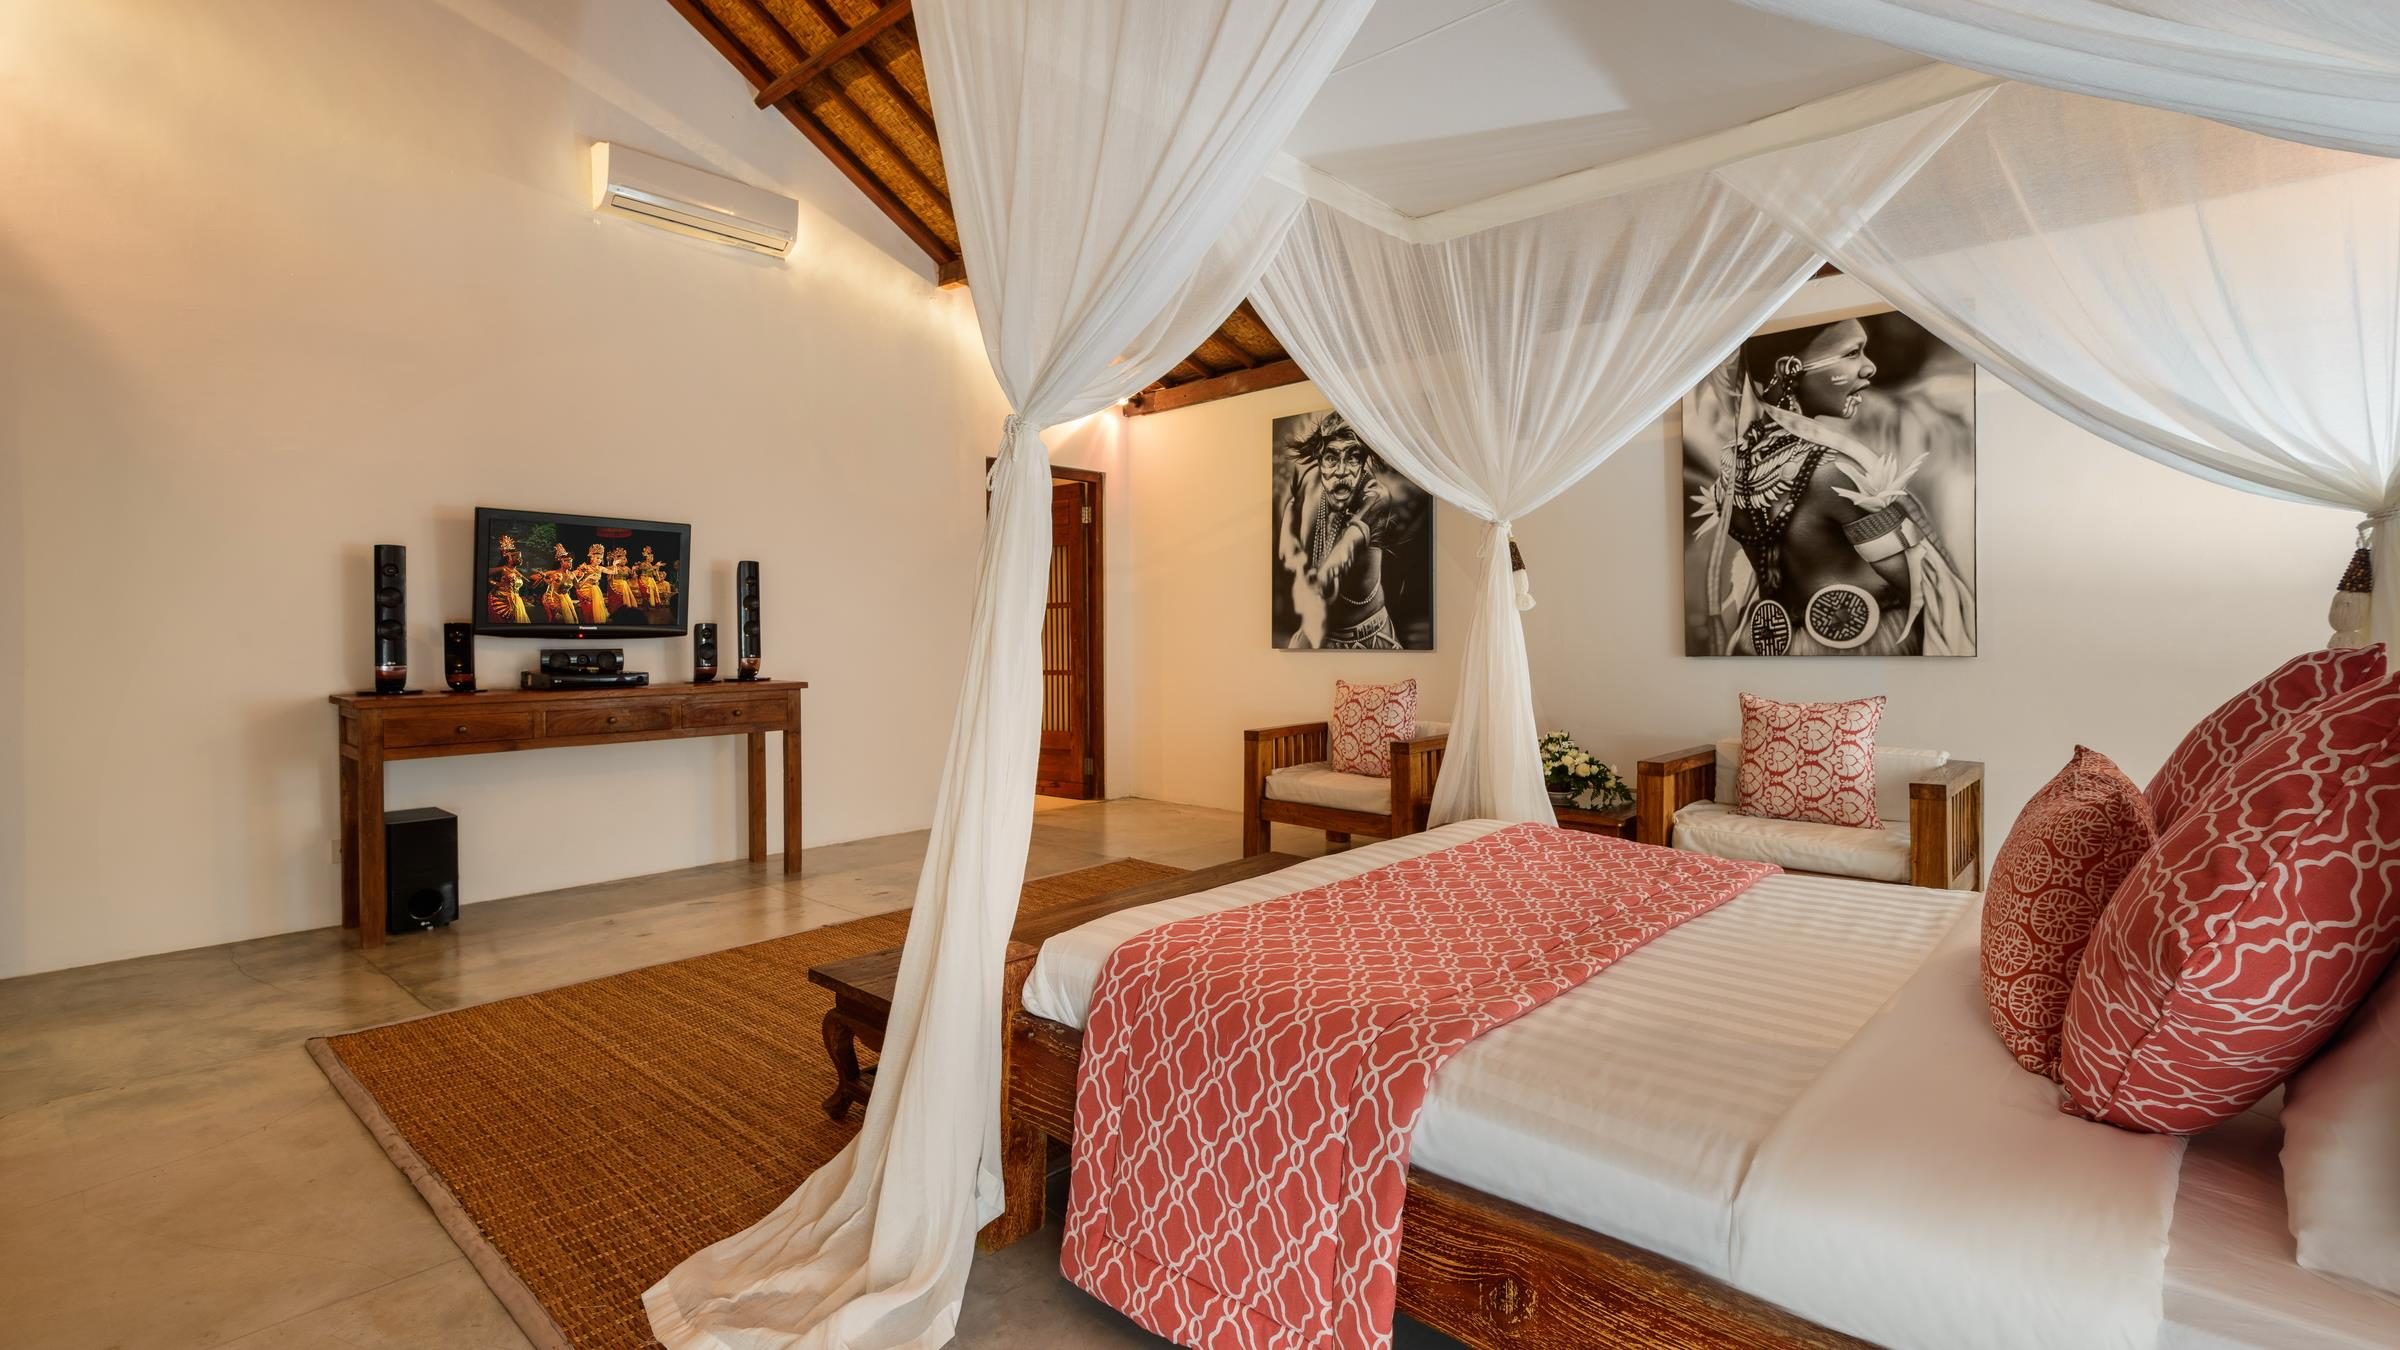 Bedroom with TV and Paintings - Villa Ace - Seminyak, Bali